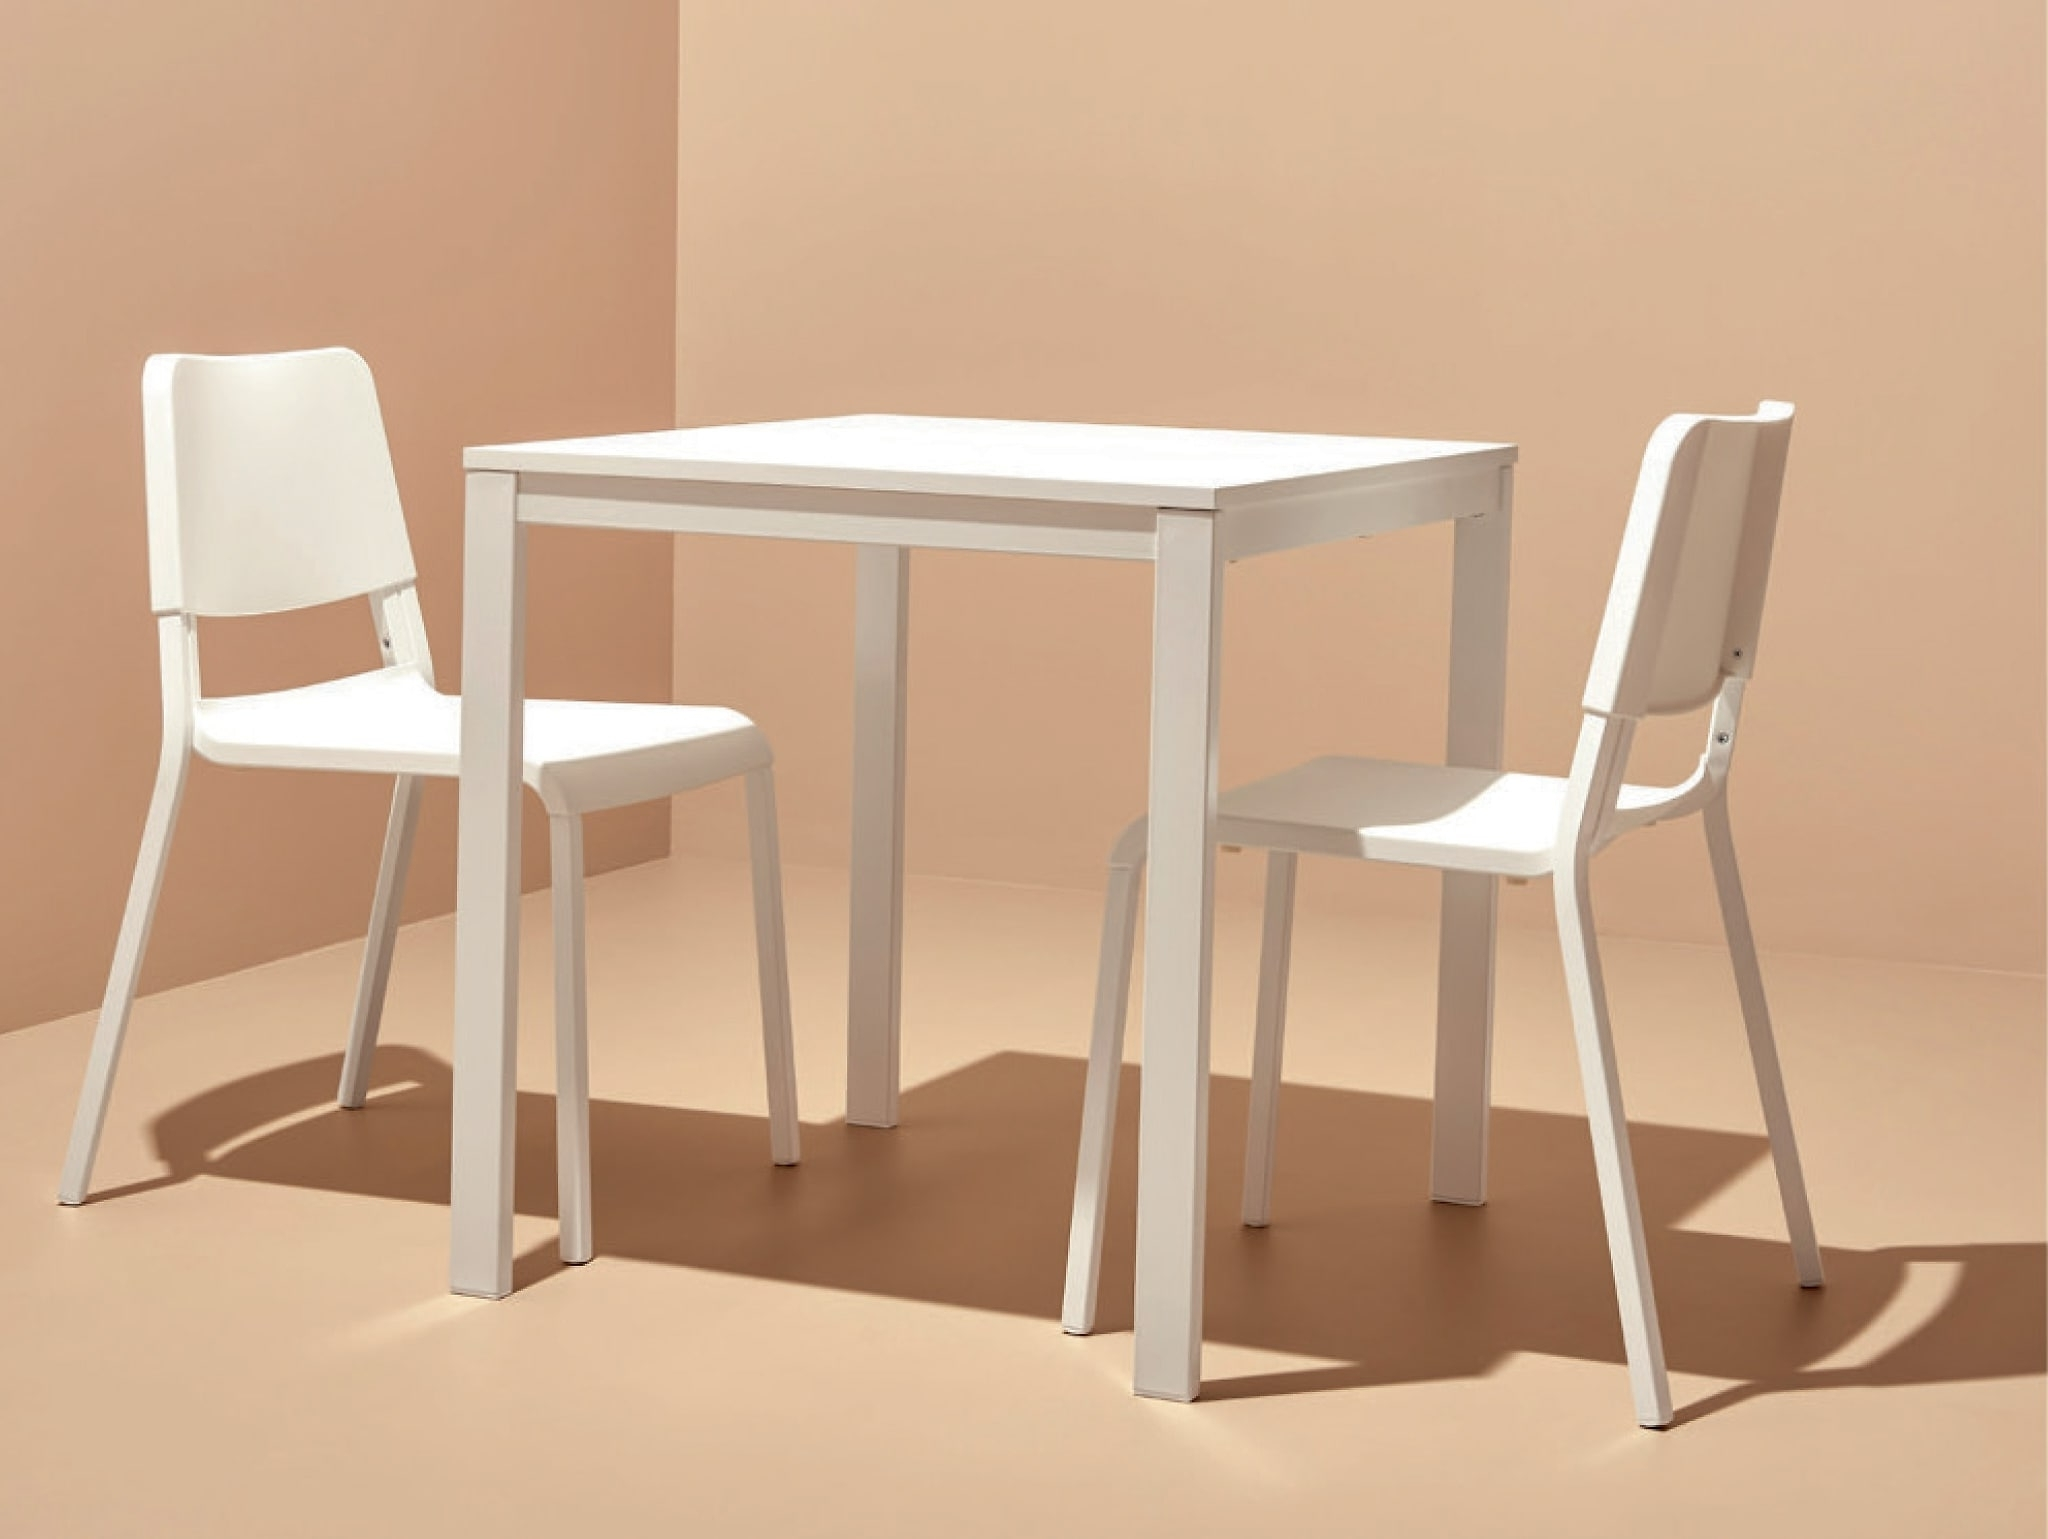 White Dining Tables Sets For Well Known Dining Table Sets & Dining Room Sets (View 20 of 25)